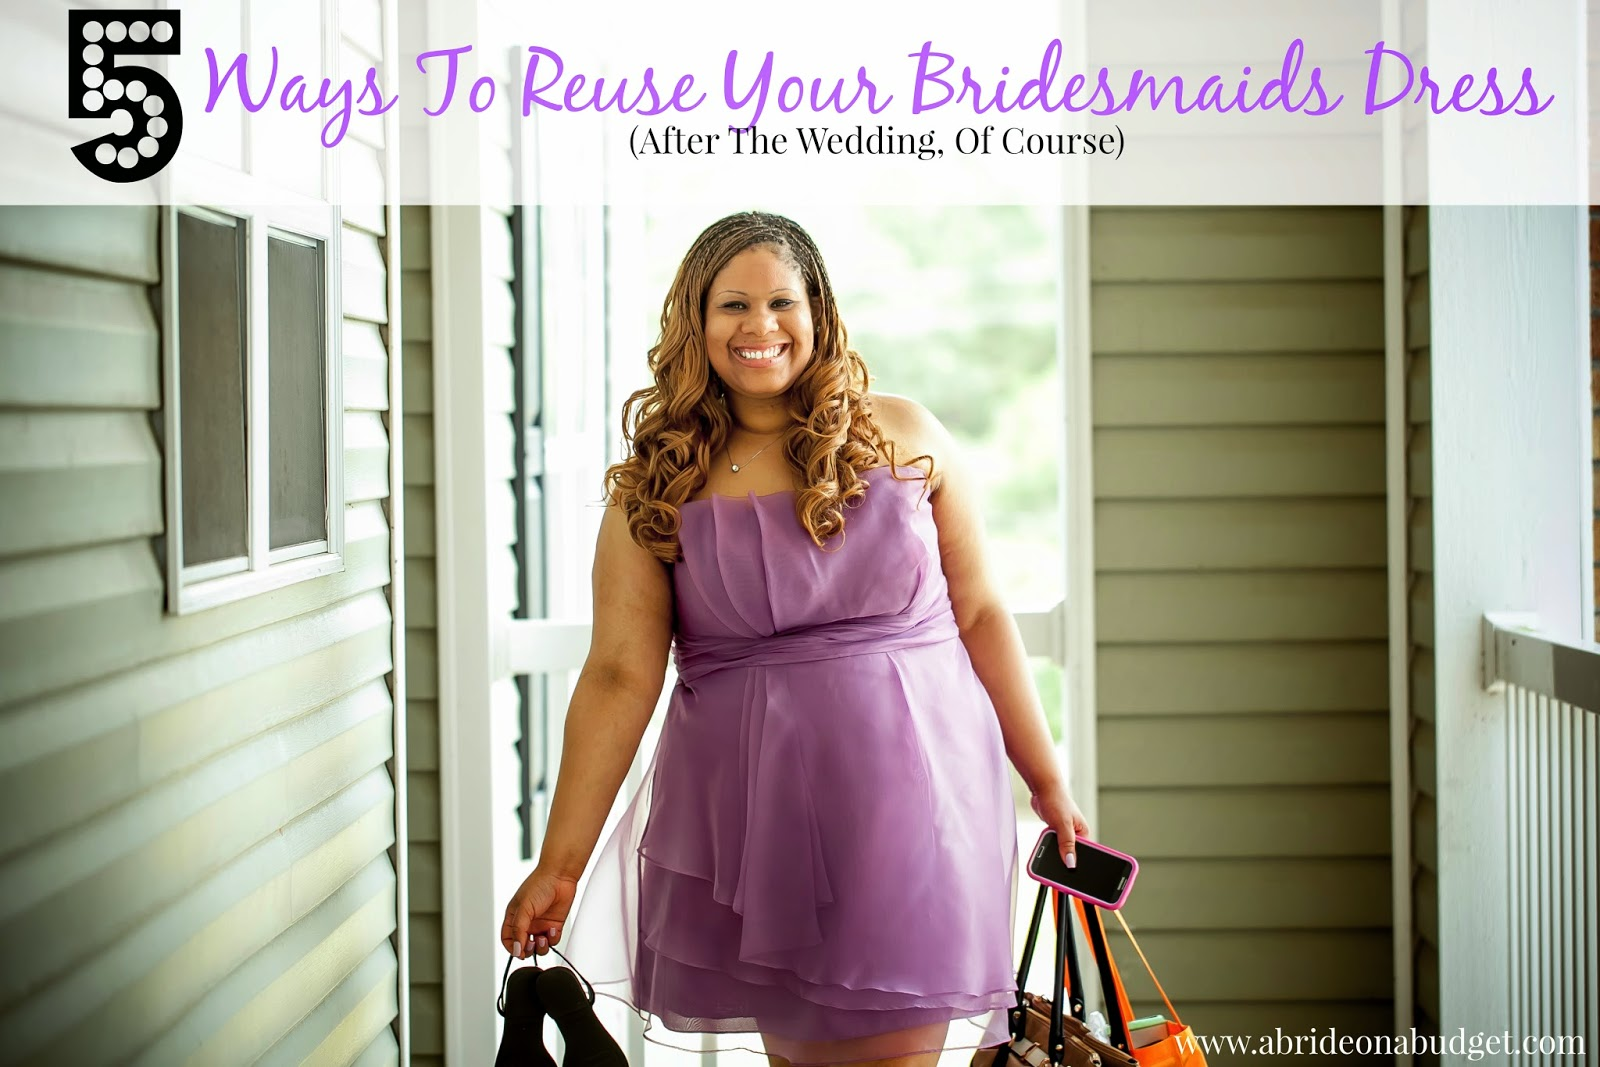 Wedding Dress For 40 Year Old Brides: Five Ways To Reuse Your Bridesmaids Dress (After The